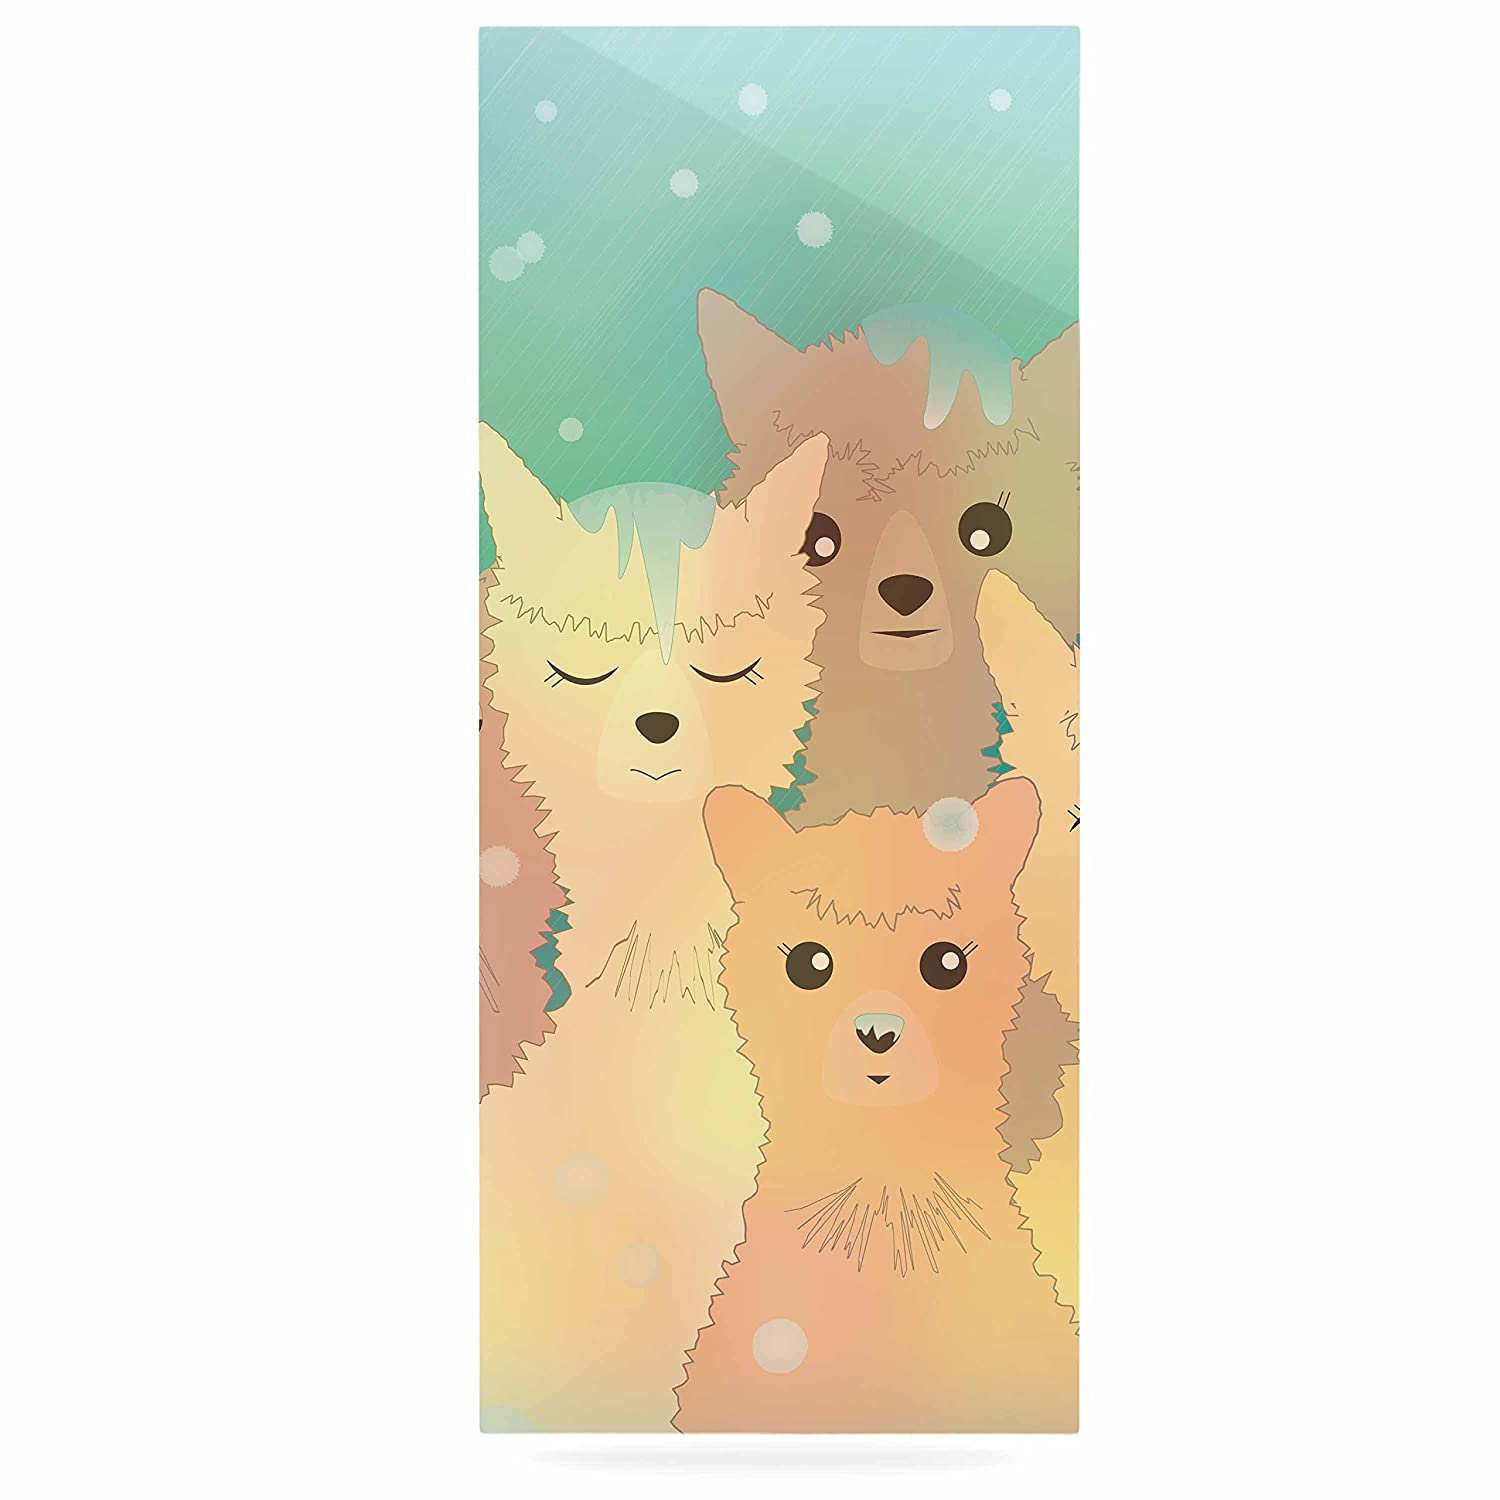 24 x 36 Kess InHouse Graphic Tabby Alpacas in Snow Pastel Animals Luxe Rectangle Panel